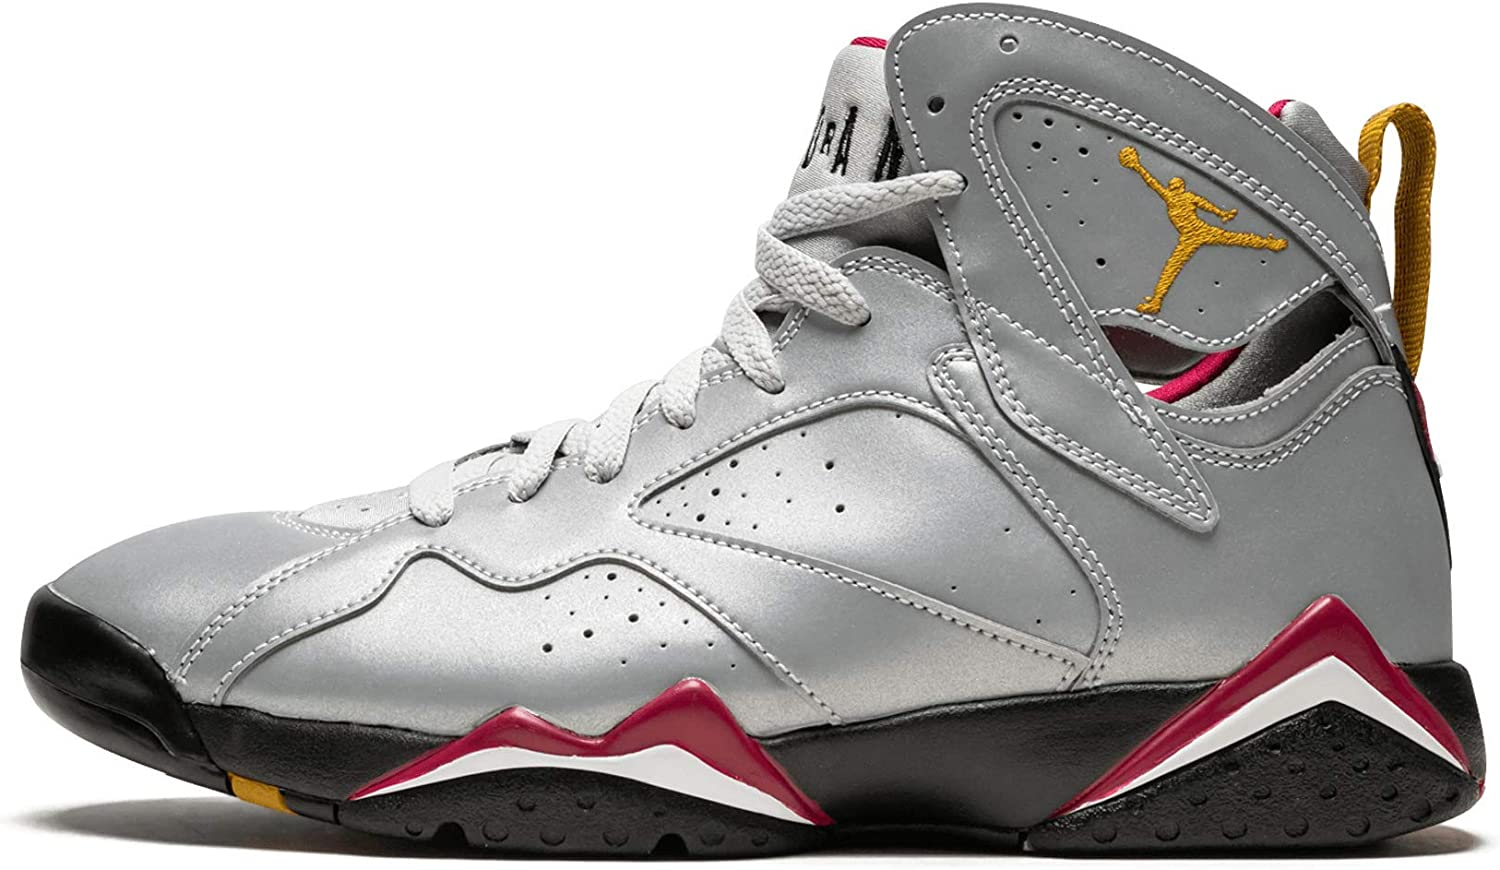 Air Jordan 7 Retro SP 'Reflections Of A Champion'